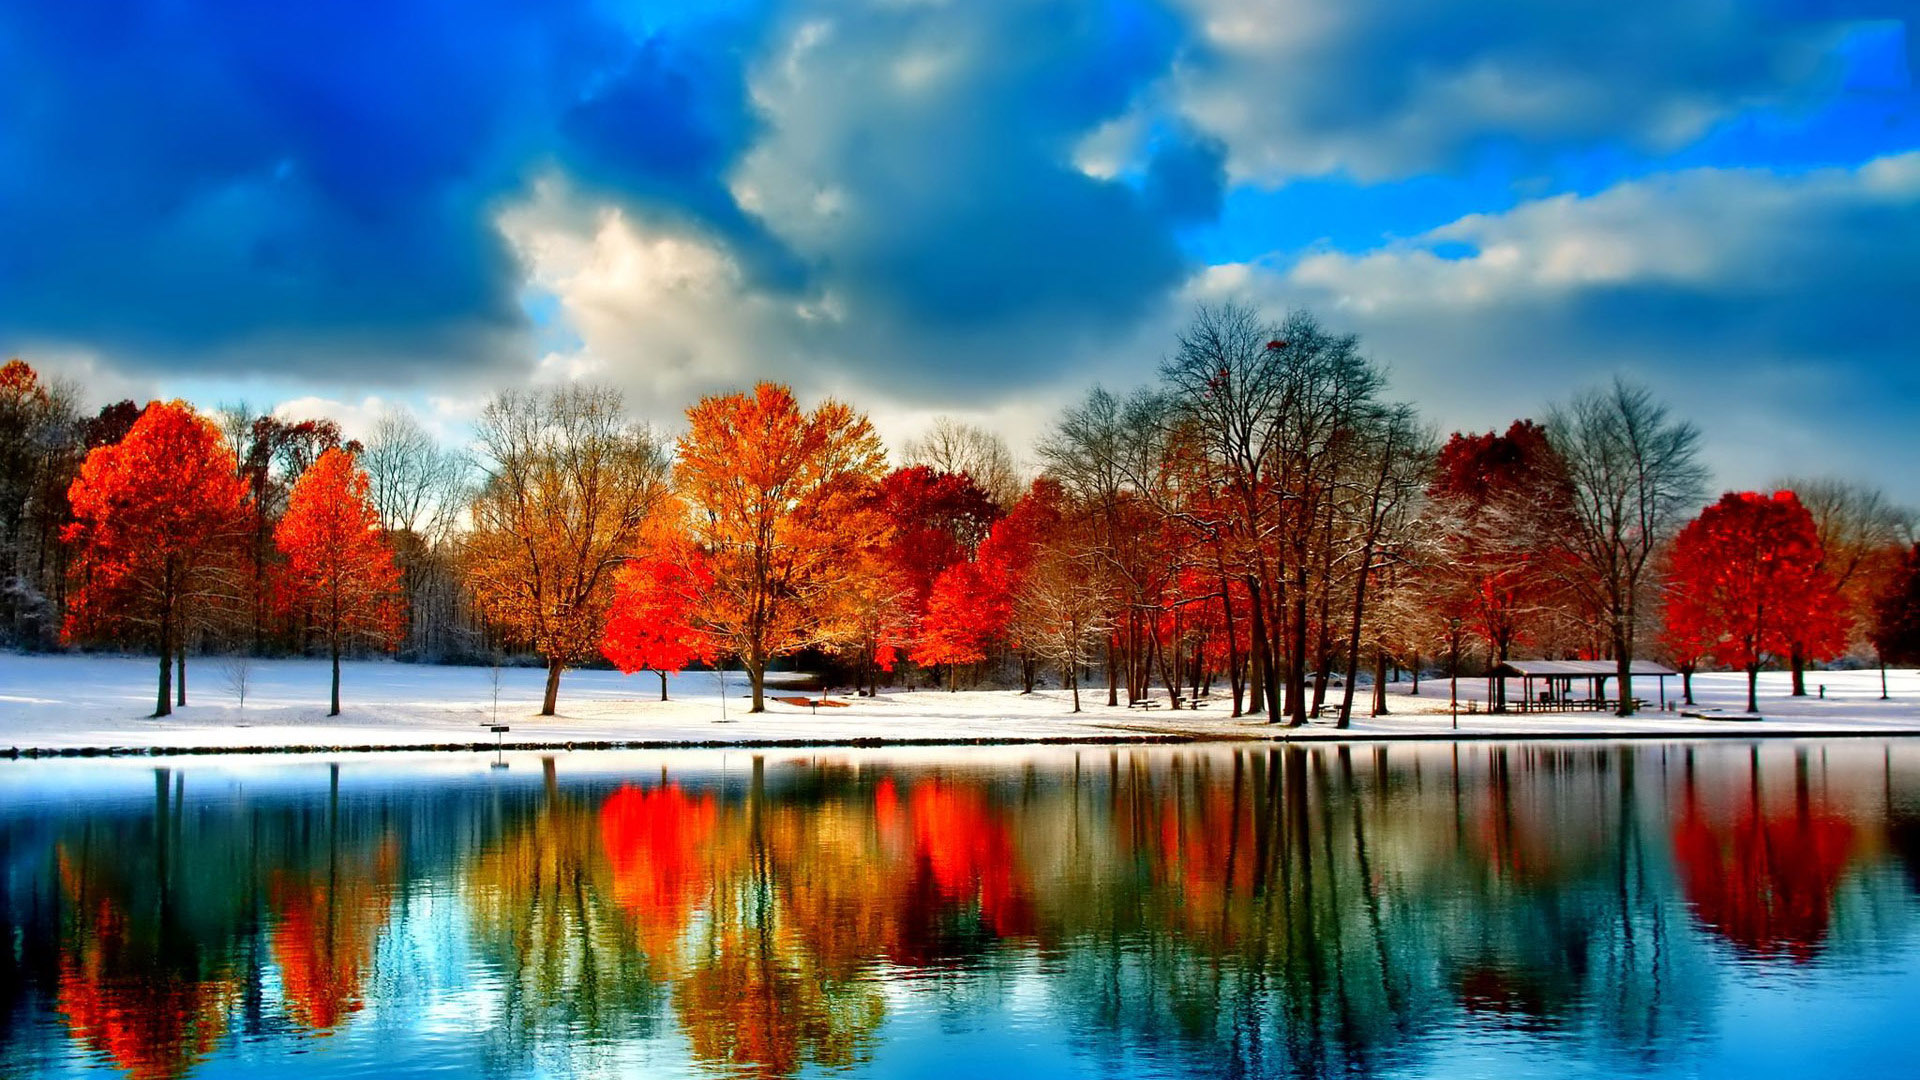 Seasonal Fall Coffee Desktop Wallpaper Wonderful Autumn Trees Mirror In The Lake